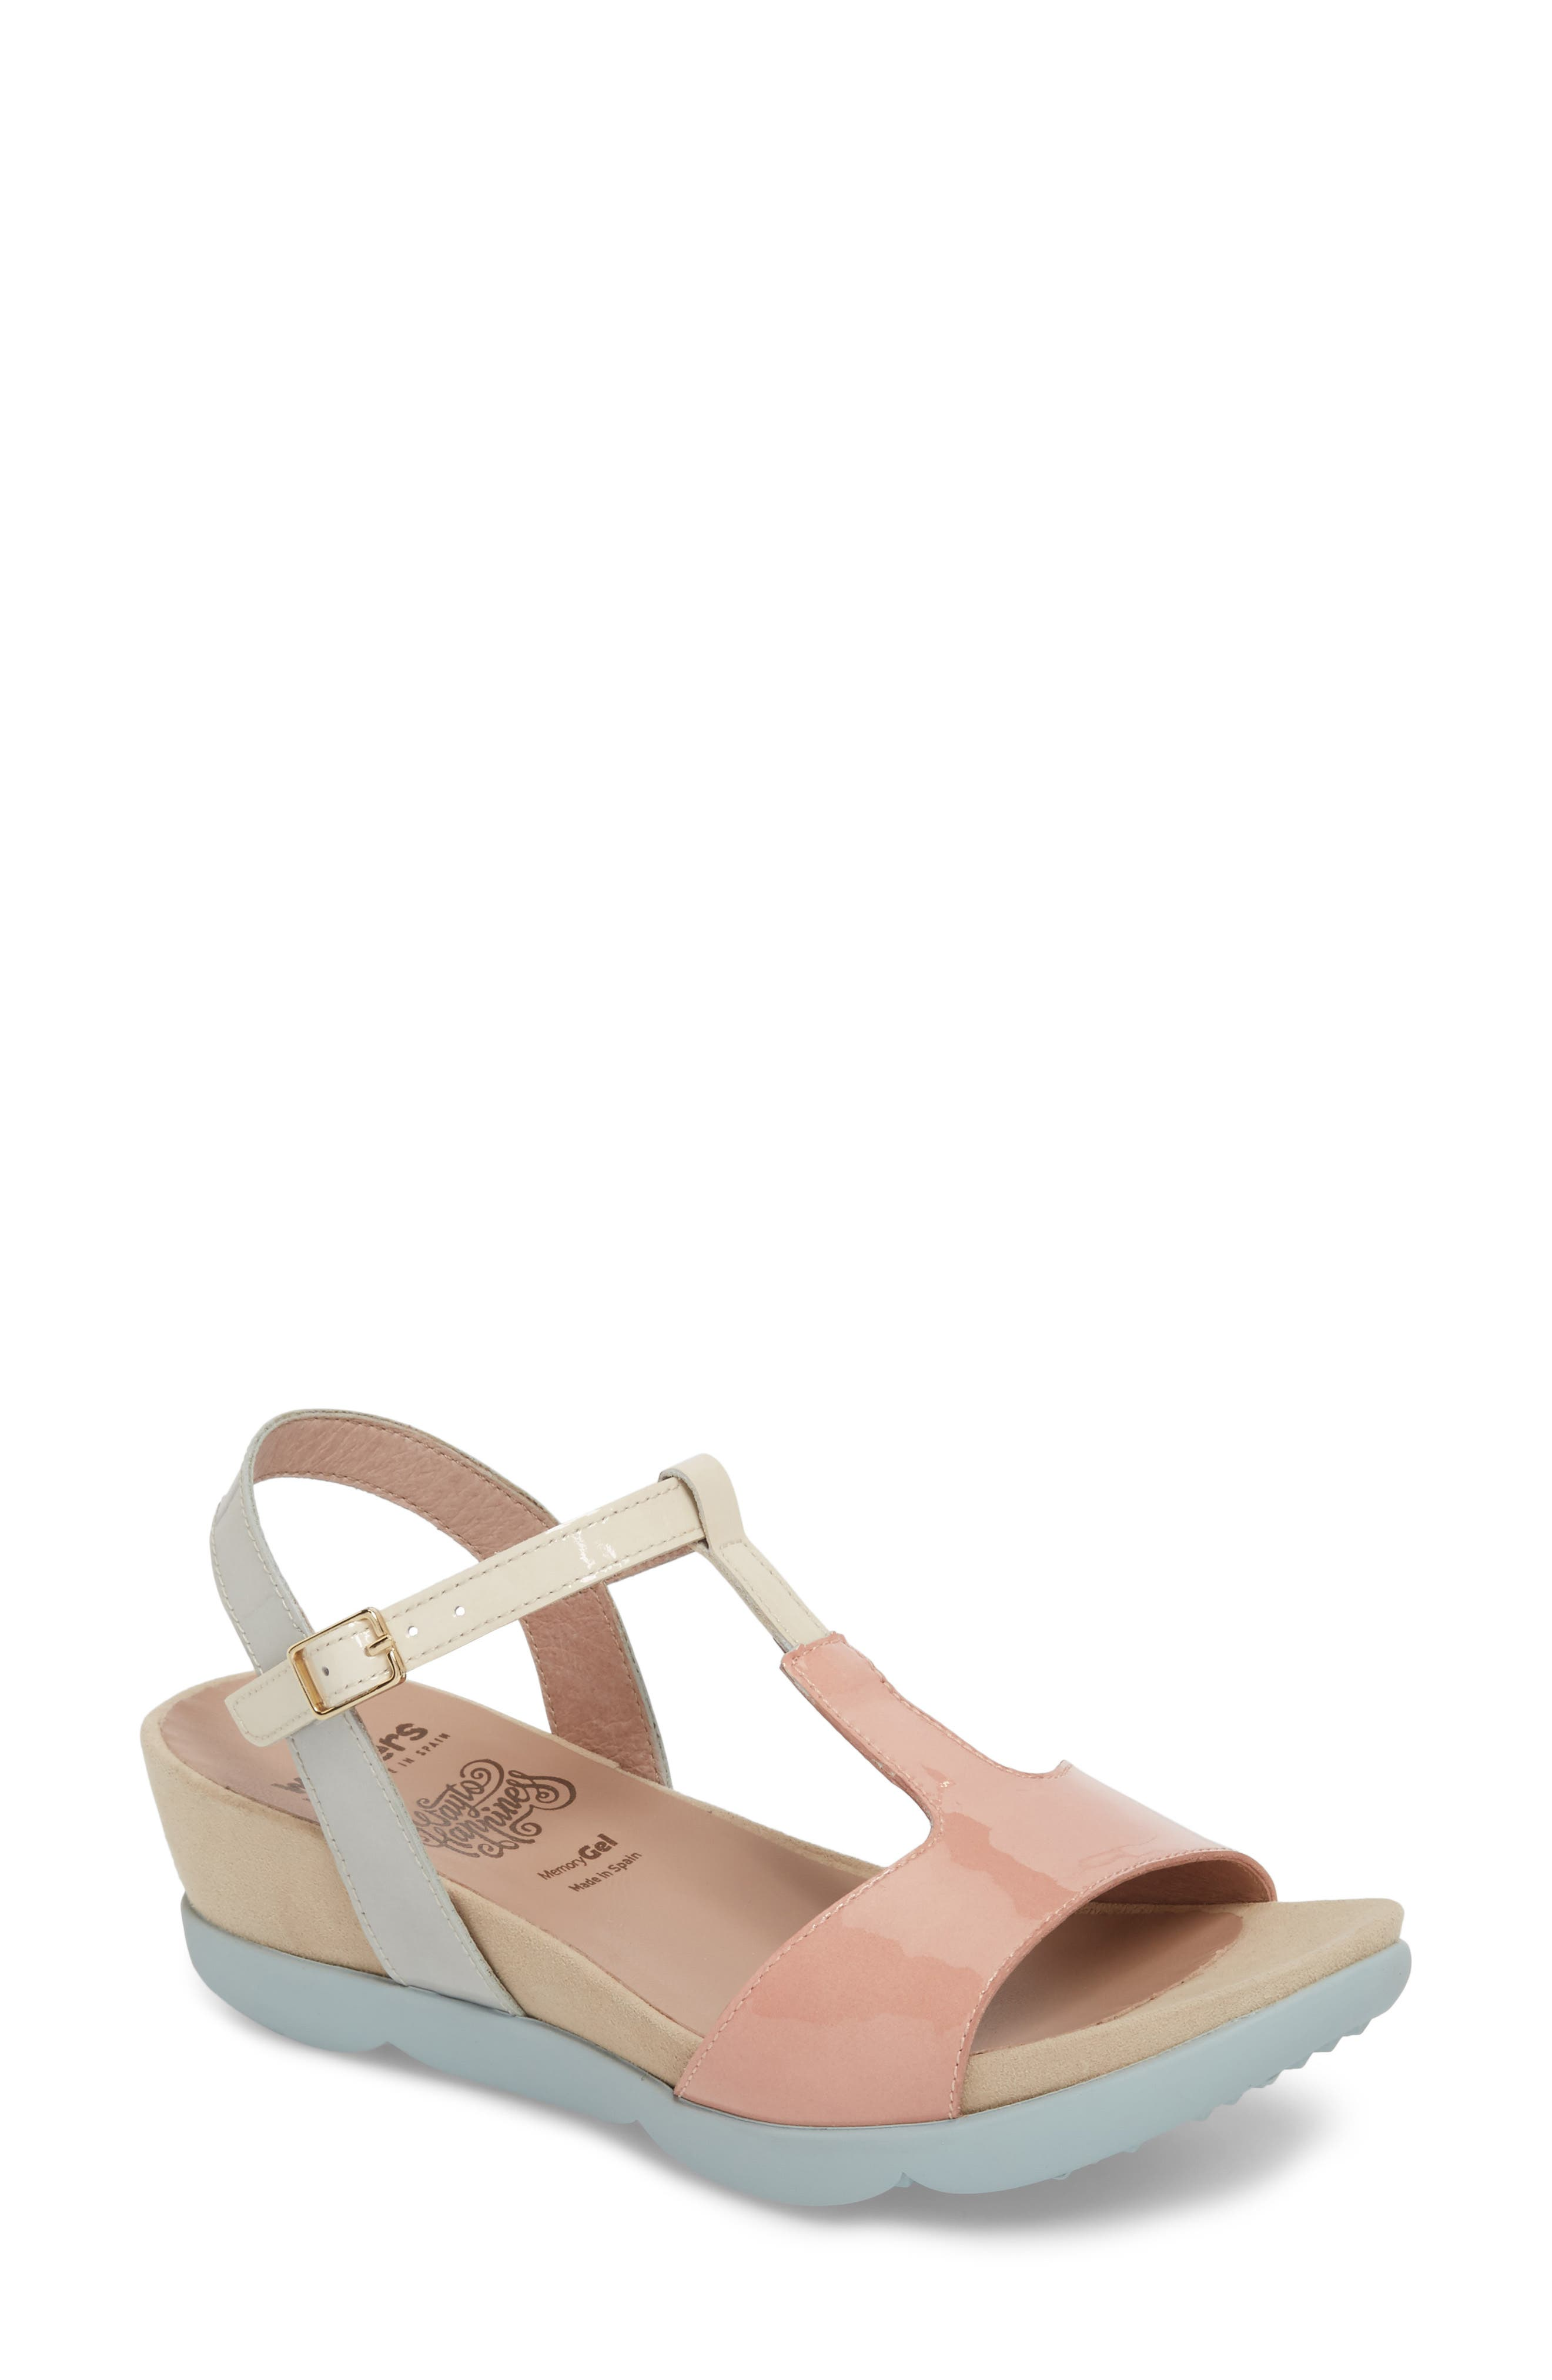 Wedge Sandal,                             Main thumbnail 1, color,                             Nude/ Off/ Light Grey Leather